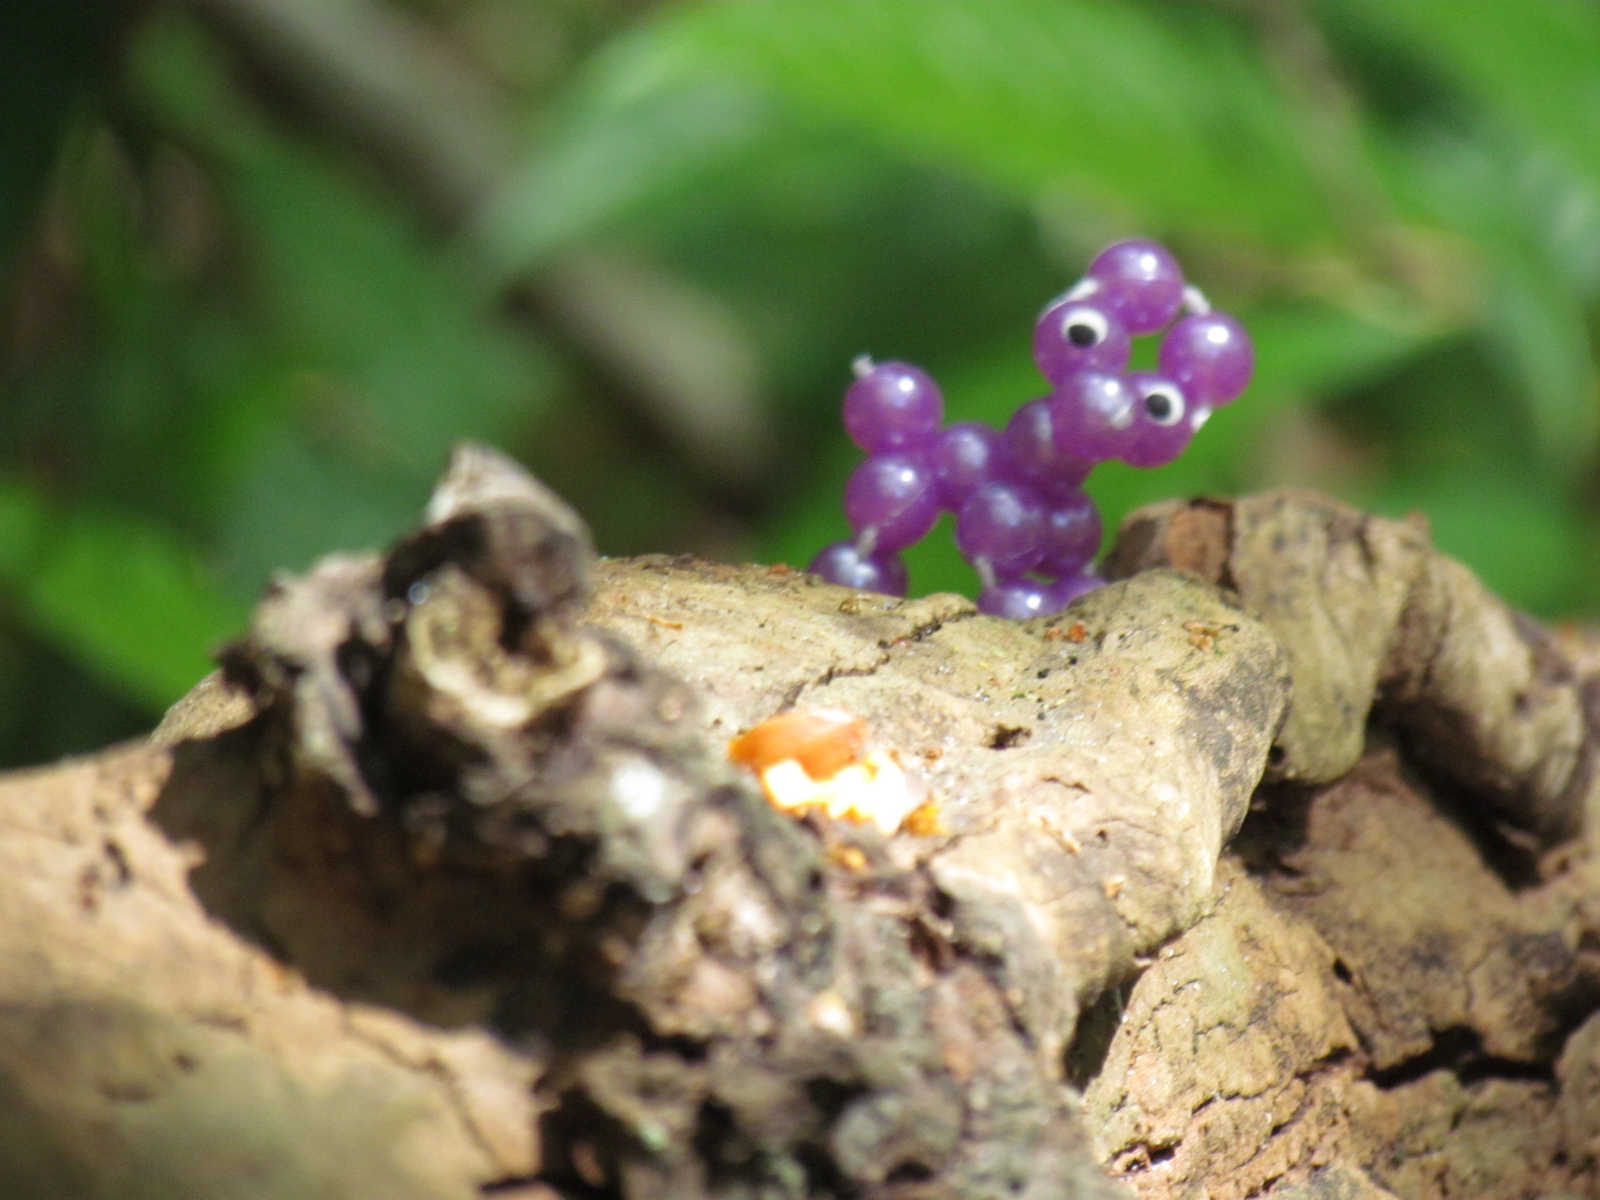 A tiny, purple gemstone poodle dog toy in the forest on a wooden log in mother nature in Florida